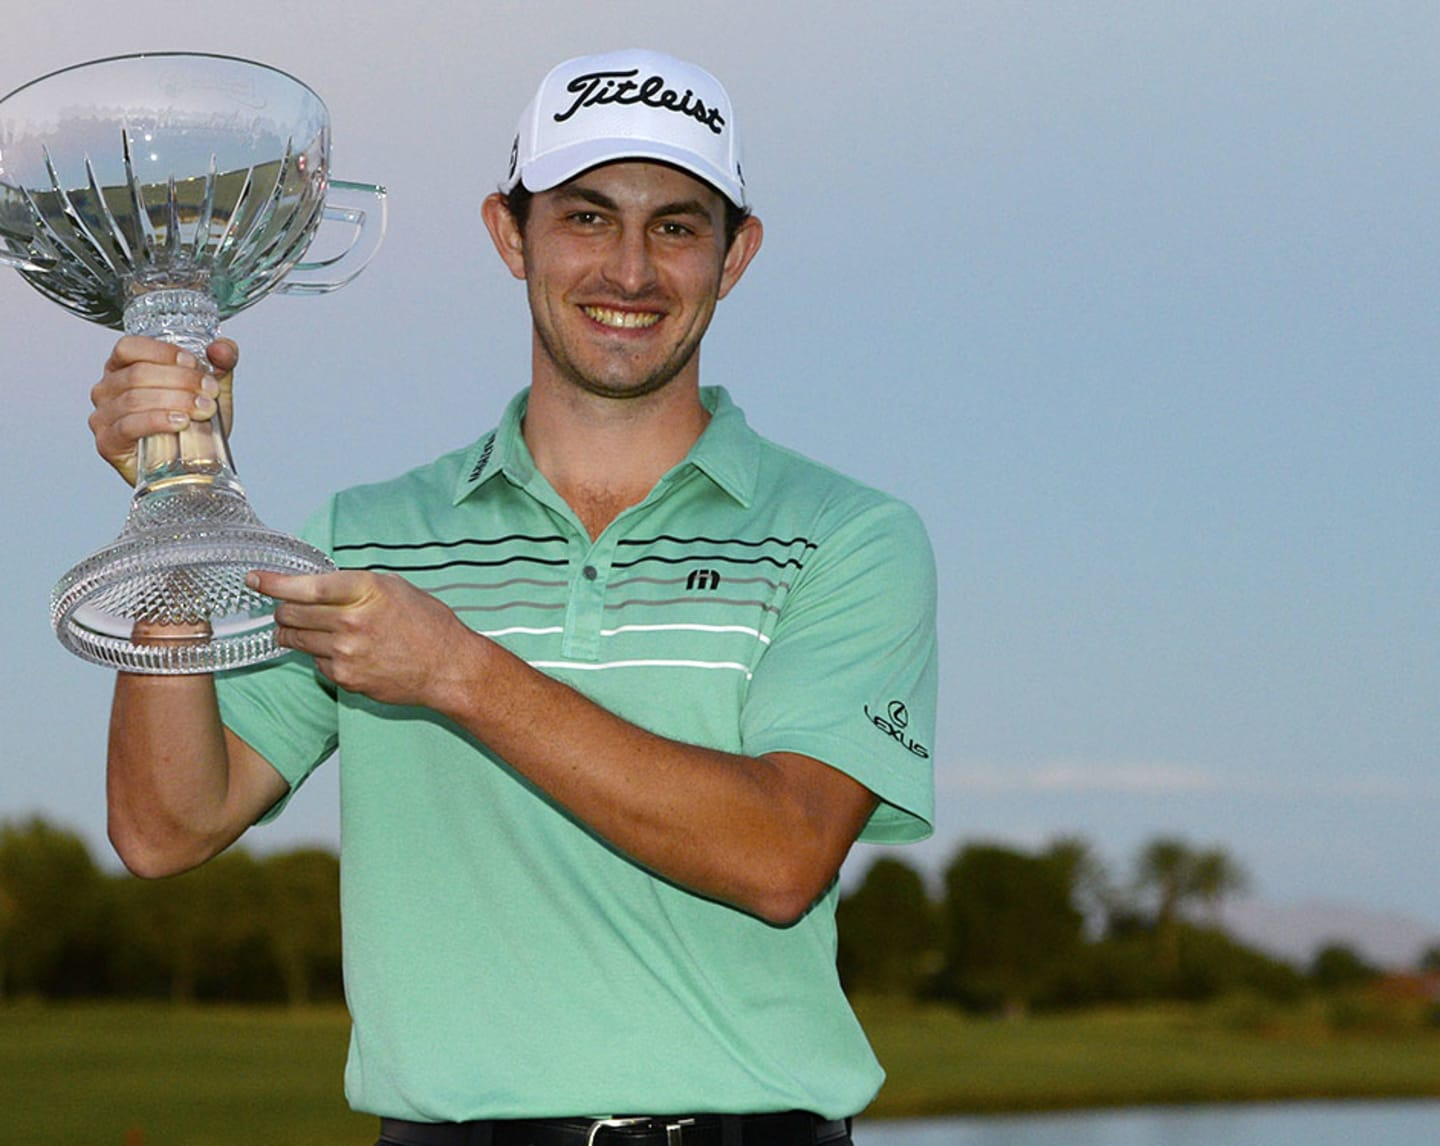 Patrick Cantlay Grabs First Tour Win In Vegas